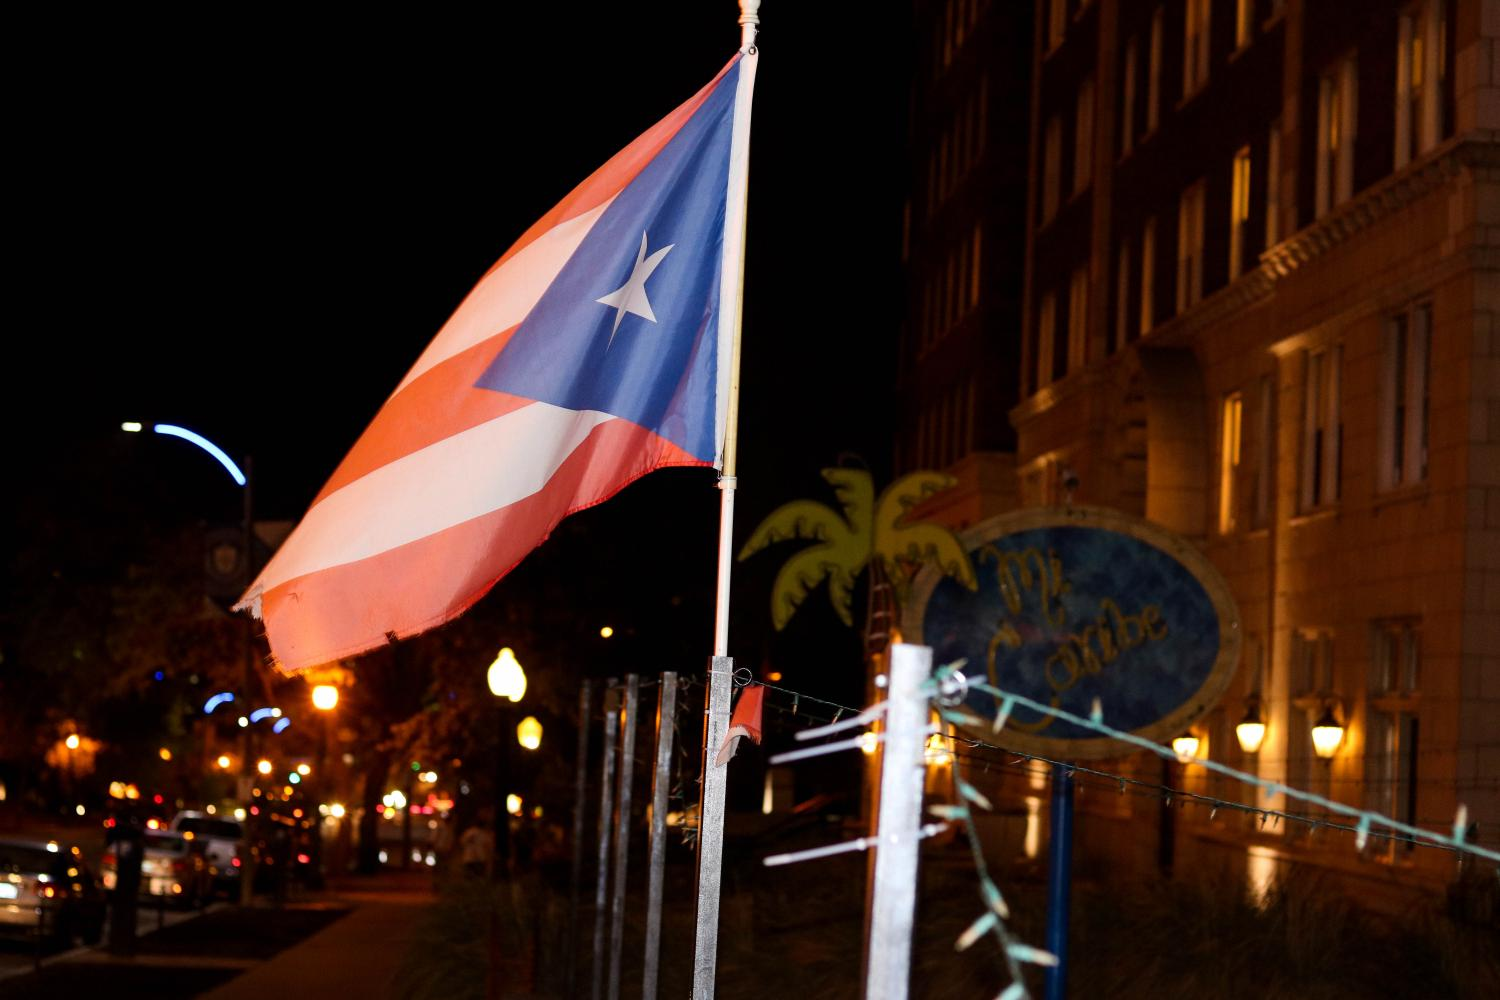 A Puerto Rico flag flies outside of Mi Caribe, where a fundraiser for the island took place.